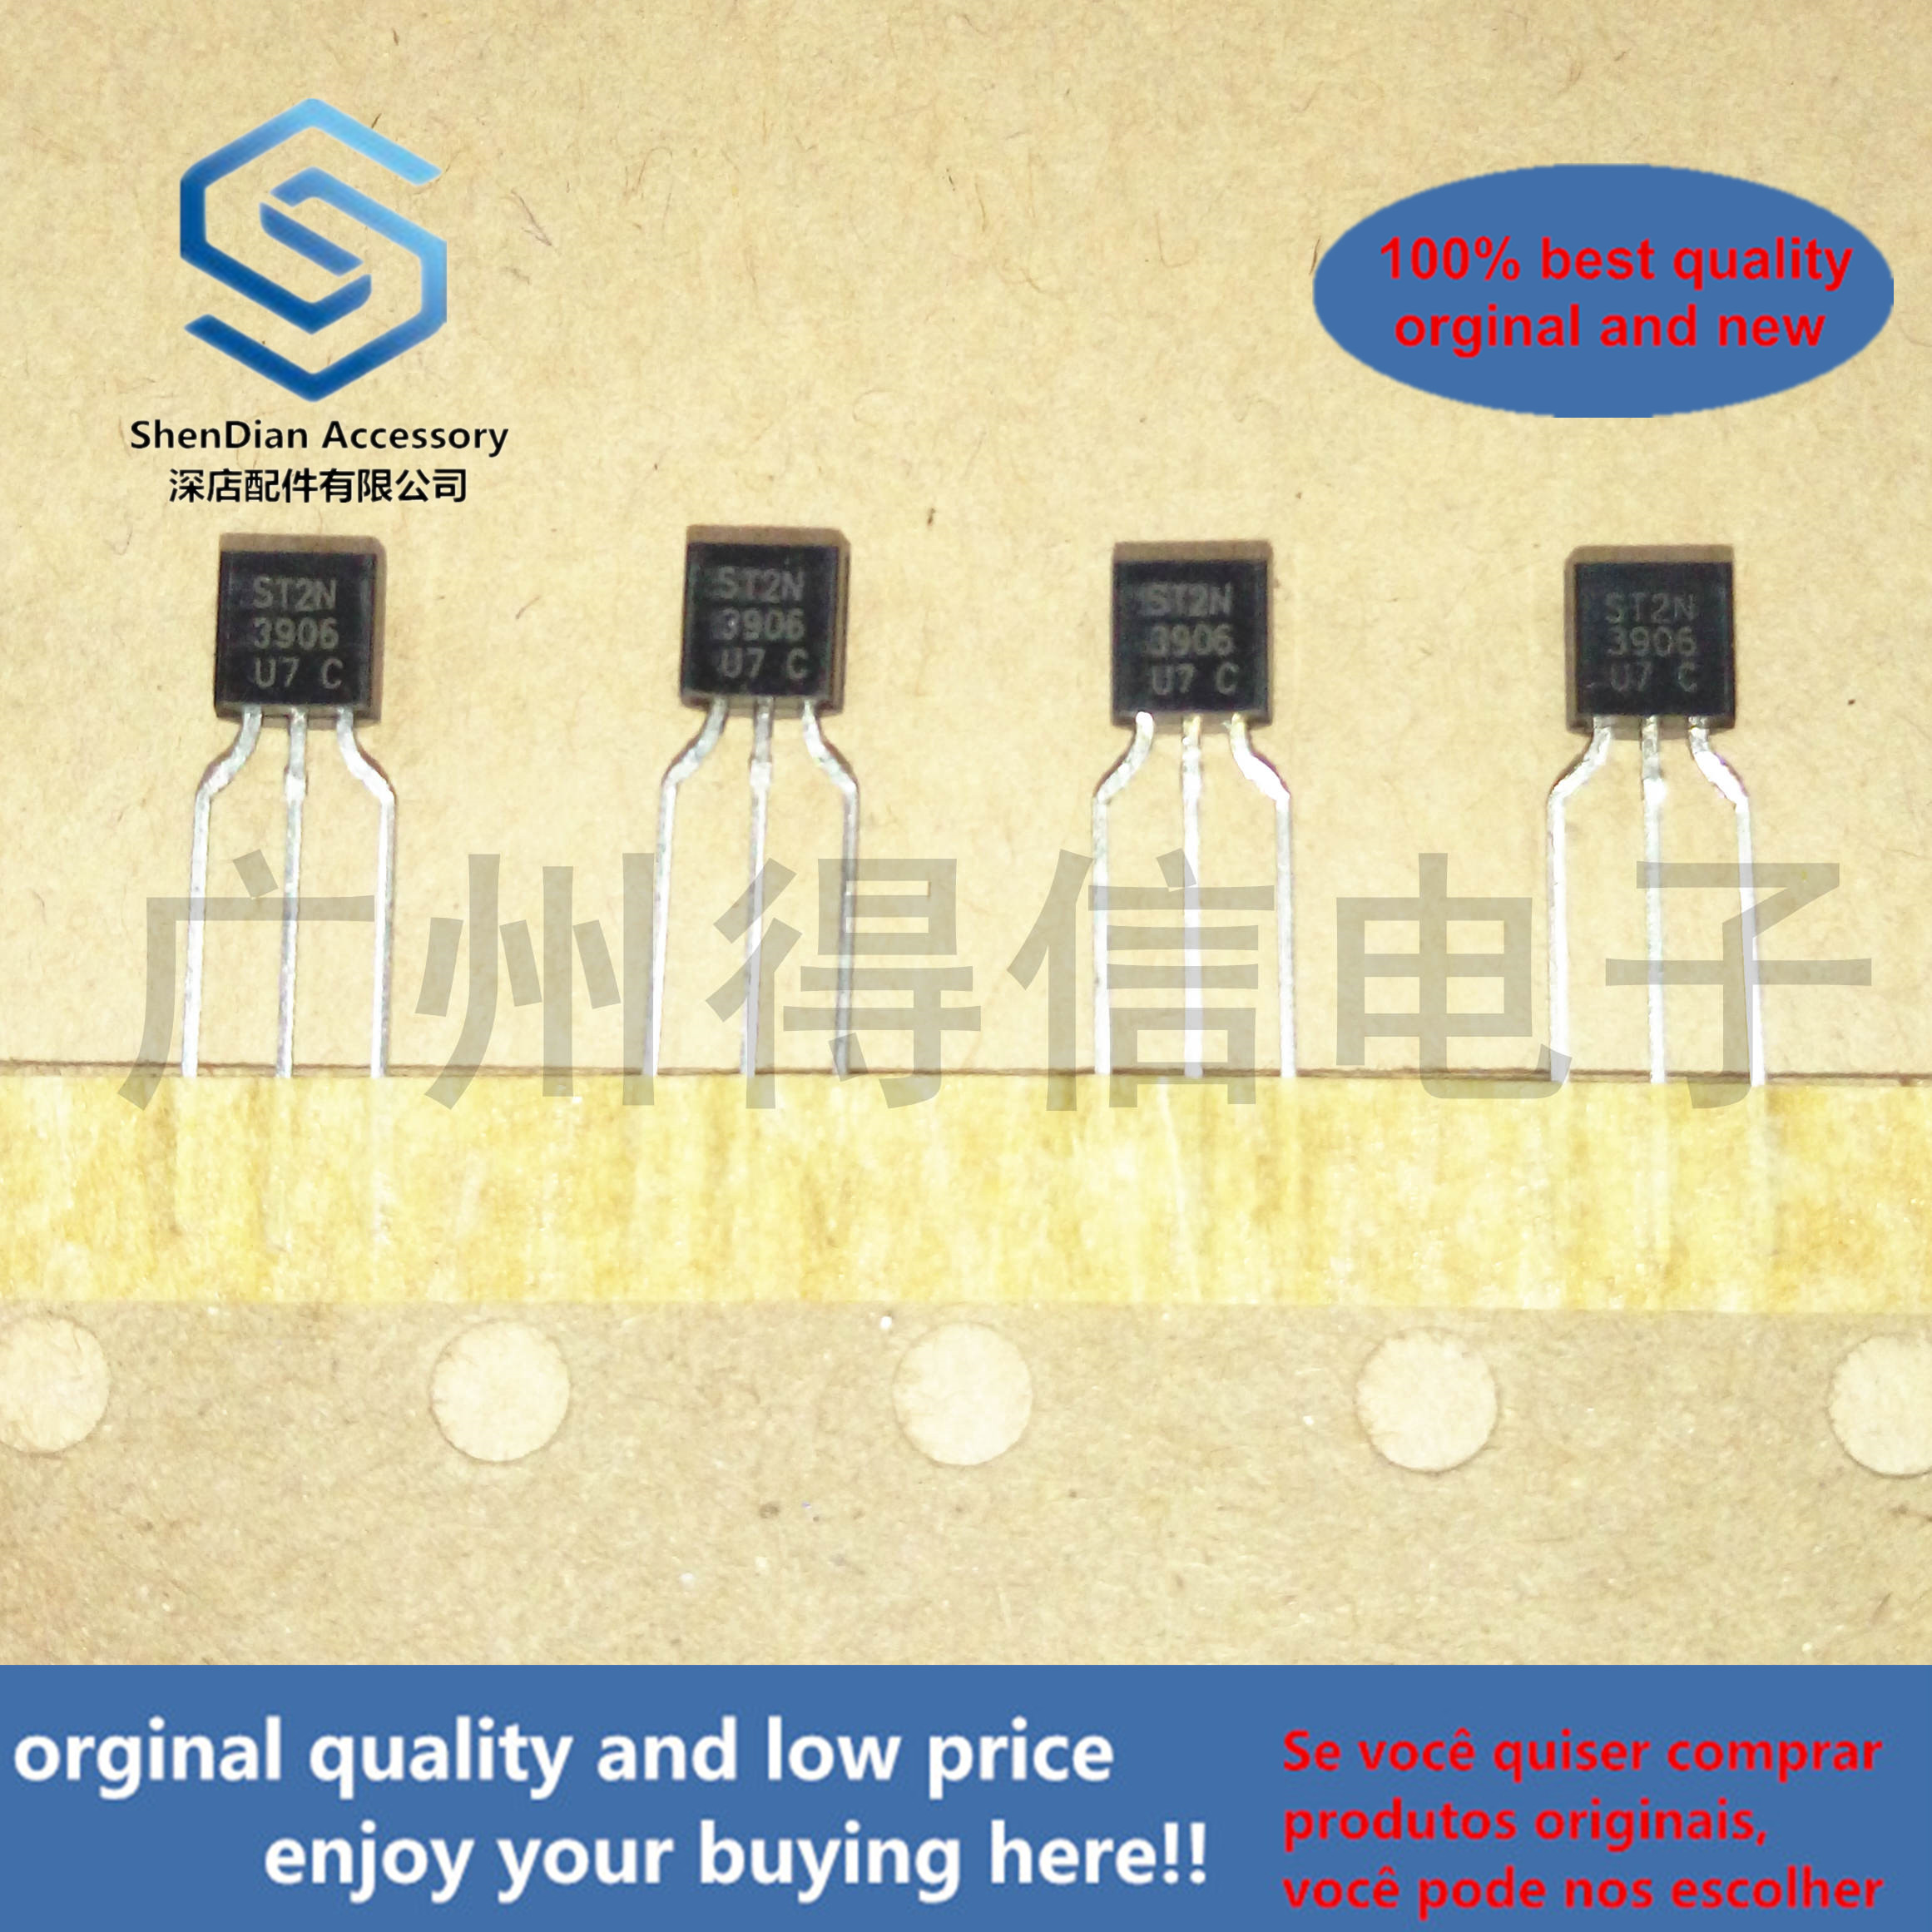 50pcs 100% Orginal New 2N3906 3906  NPN Silicon Expitaxial Planar Transistor For SwitchTriode Strip Copper Feet TO-92 Real Photo